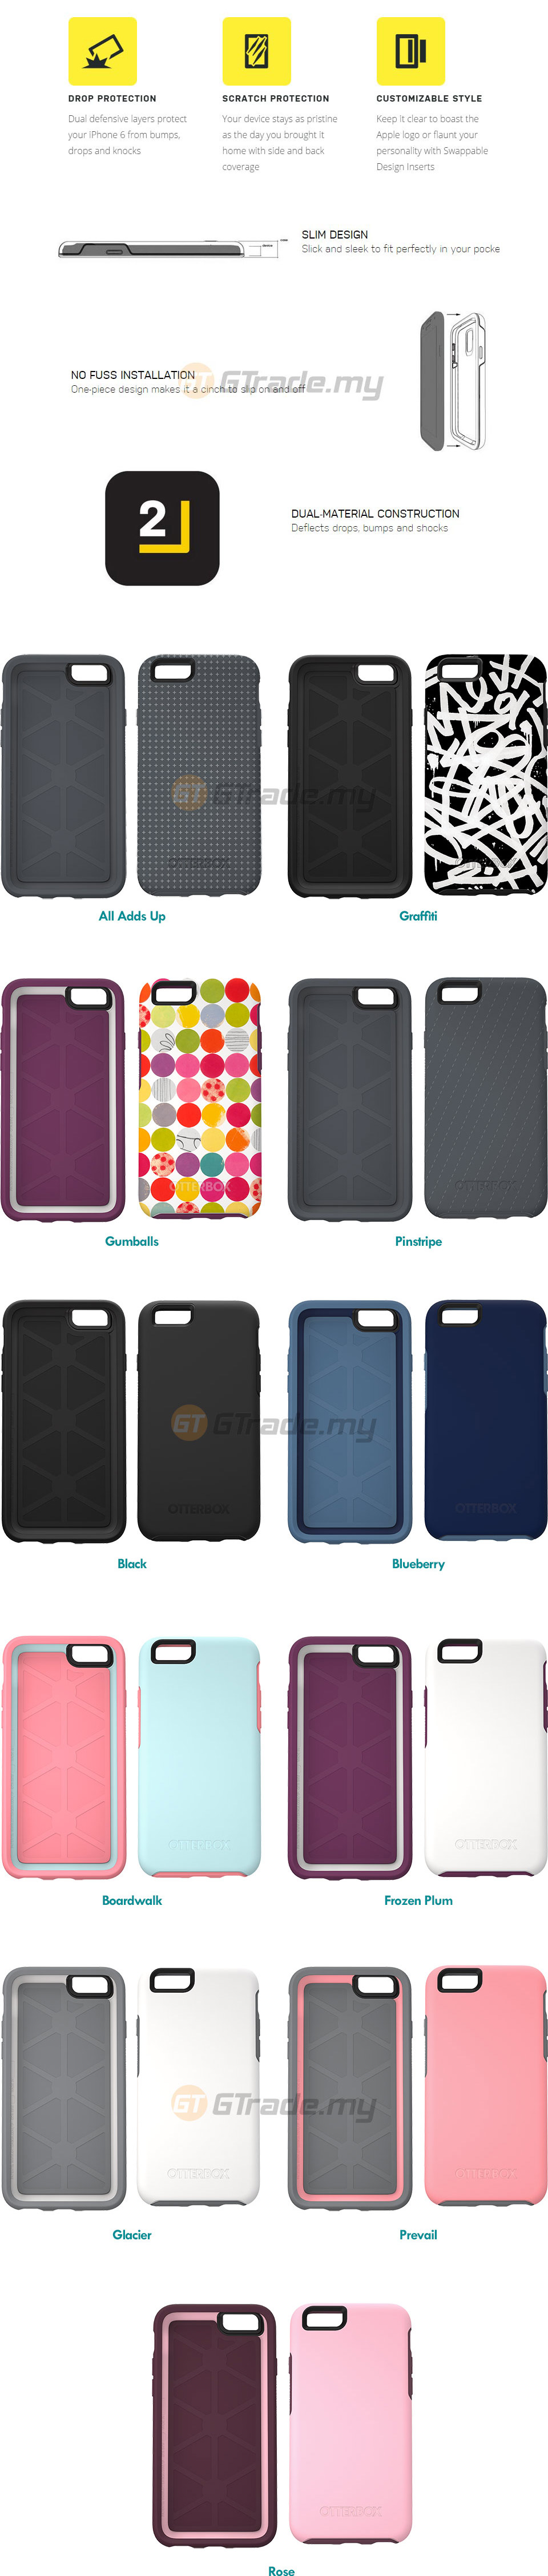 otterbox-new-symmetry-case-slim-style-tough-protect-apple-iphone-6s-6-p